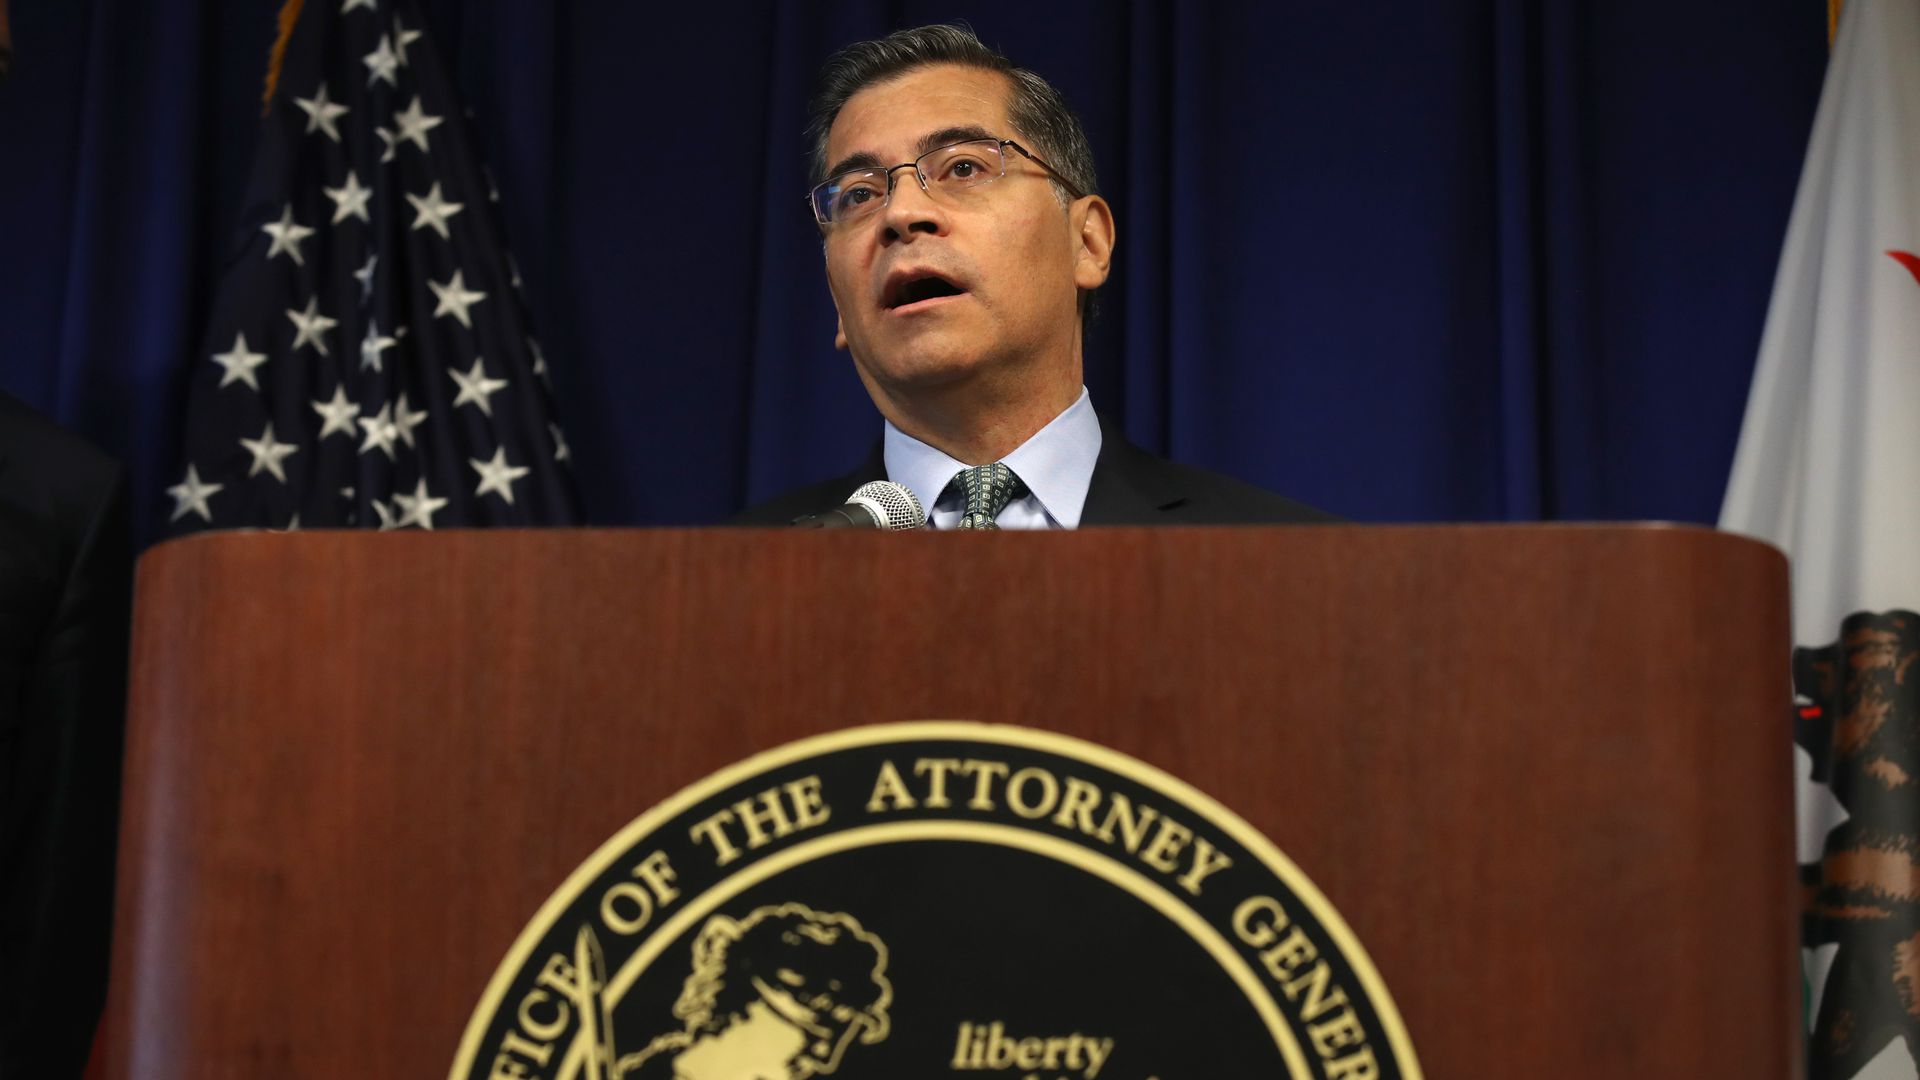 Photo of California Attorney General Xavier Becerra behind a podium next to an American flag